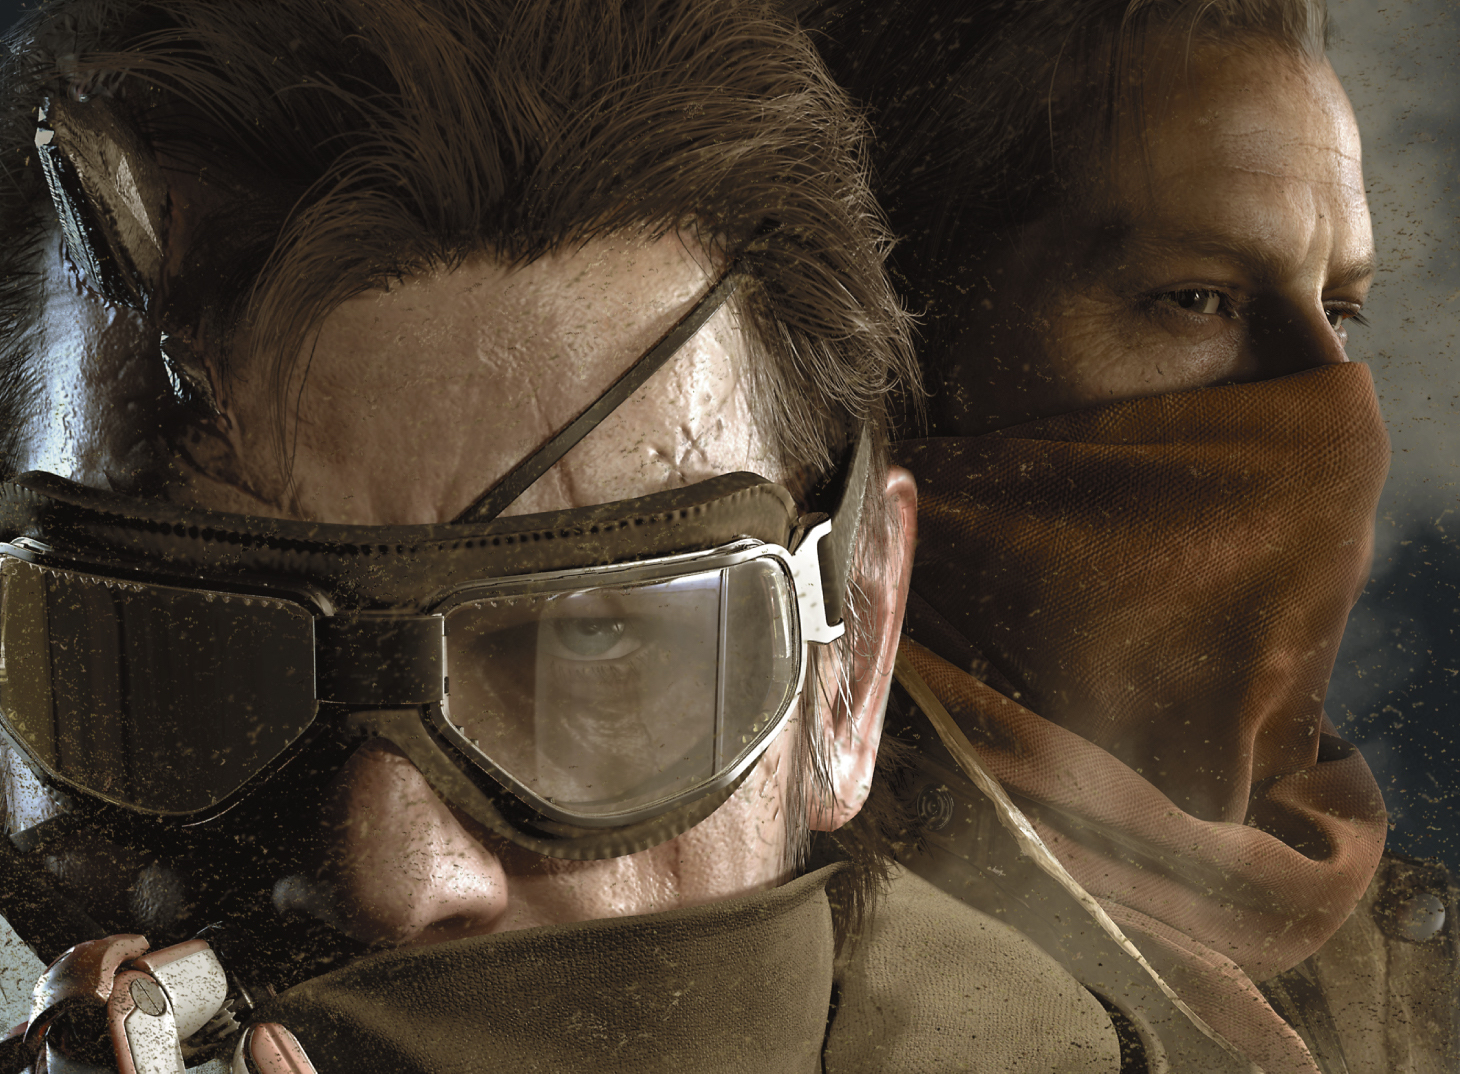 Metal Gear Solid could be first 'great video game movie,' says Kong: Skull Island director